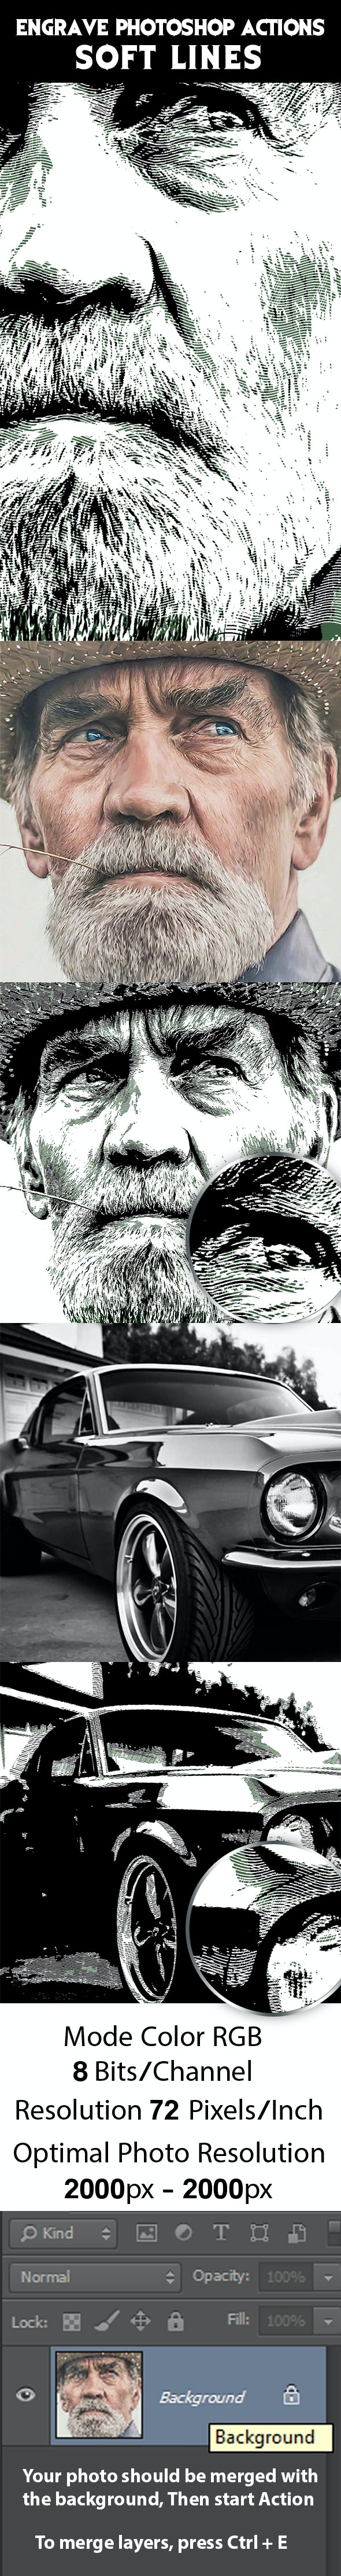 Engrave Photoshop Actions Soft Lines - Photo Effects Actions